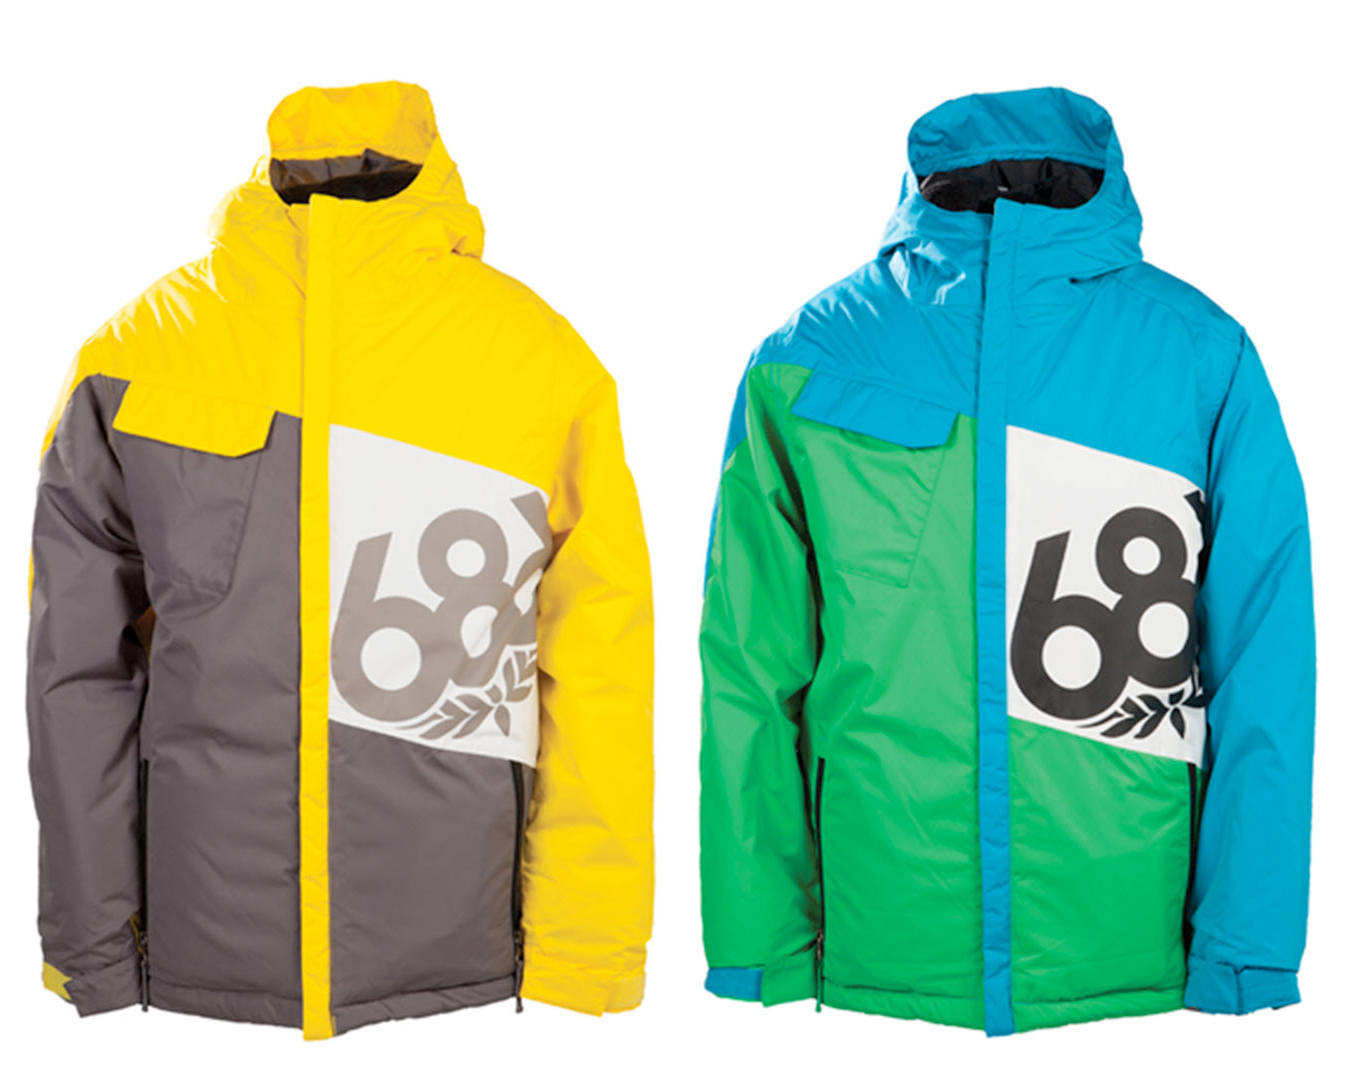 3b4ed8dc939e 686 Boys Mannual Iconic Insulated Snowboard Jacket 2014